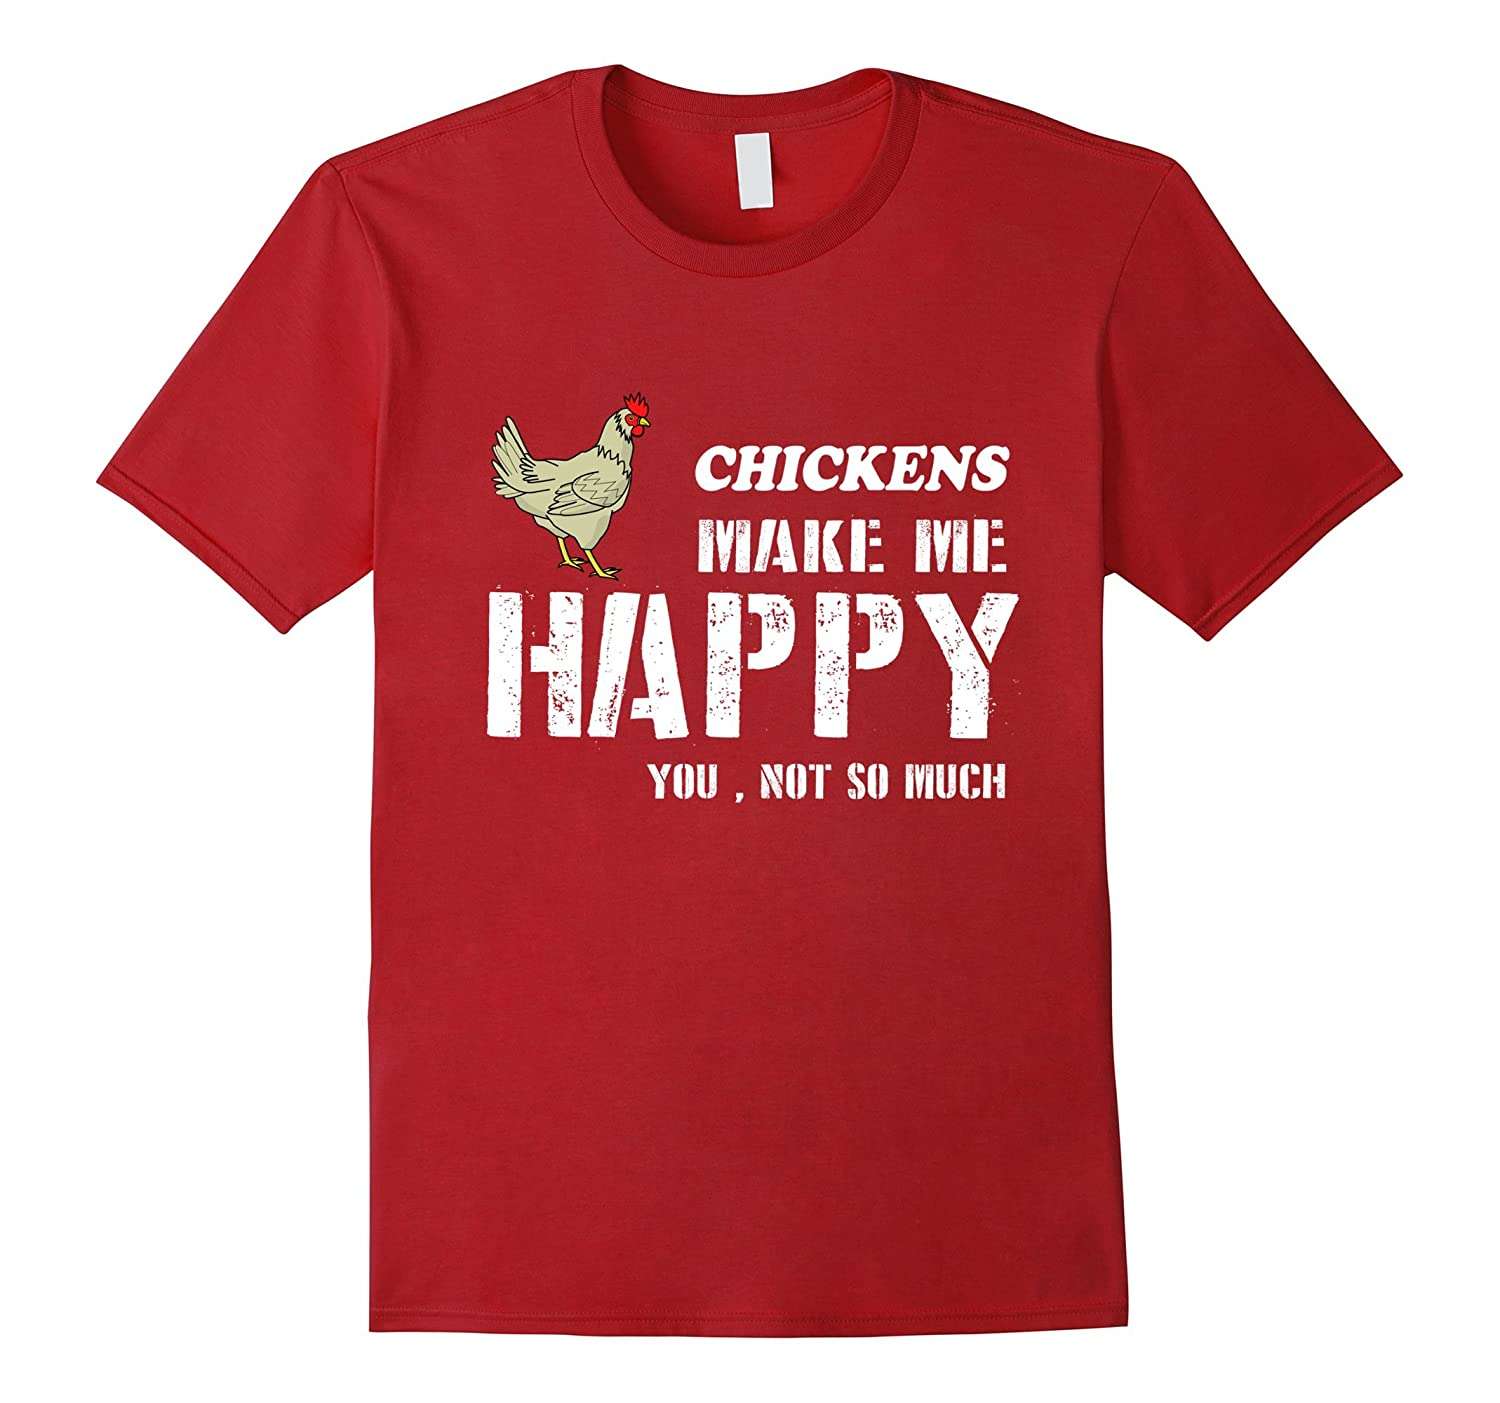 Chickens Make Me Happy You Not So Much - Chicken T-shirt-RT